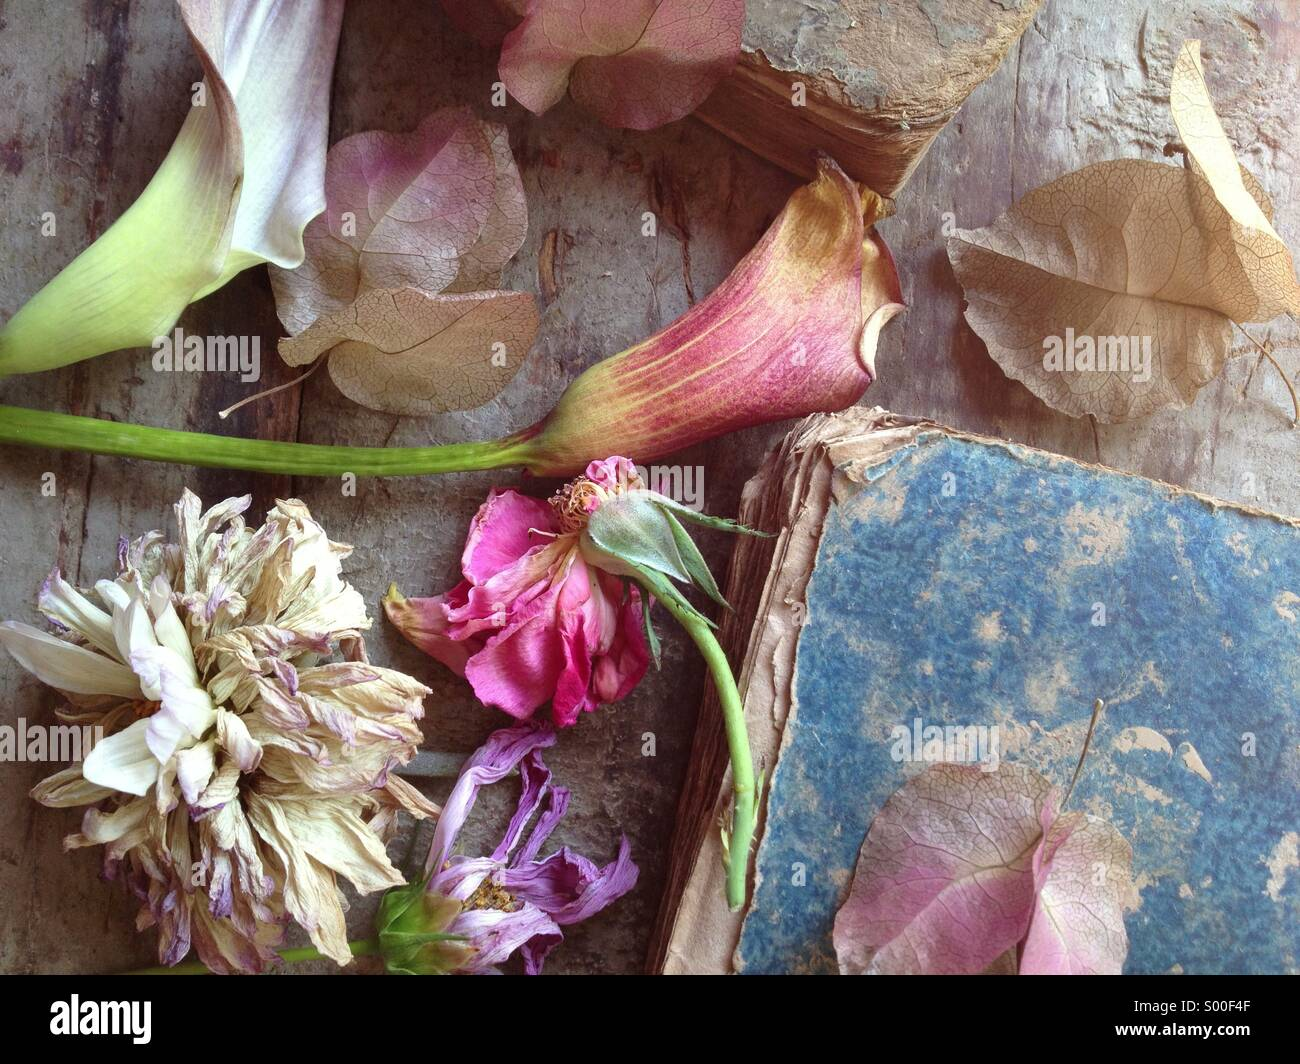 Fading flowers and old book textures - Stock Image